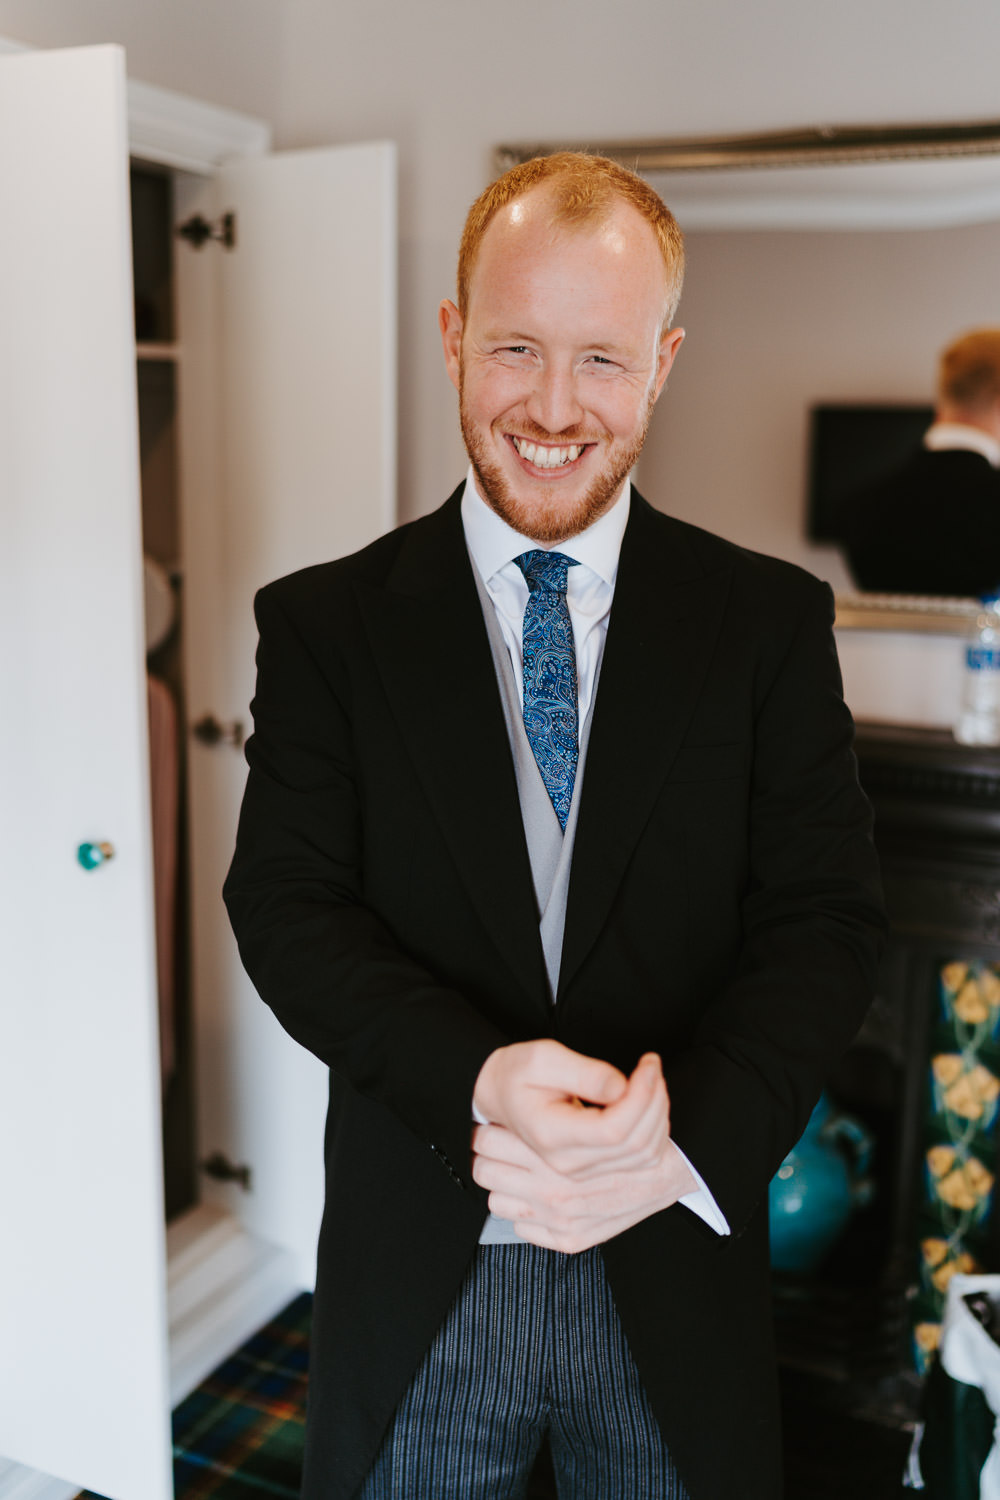 Groom Suit Tails Morning Suit Tie Waistcoat Country Festival Wedding Jonny Gouldstone Photography